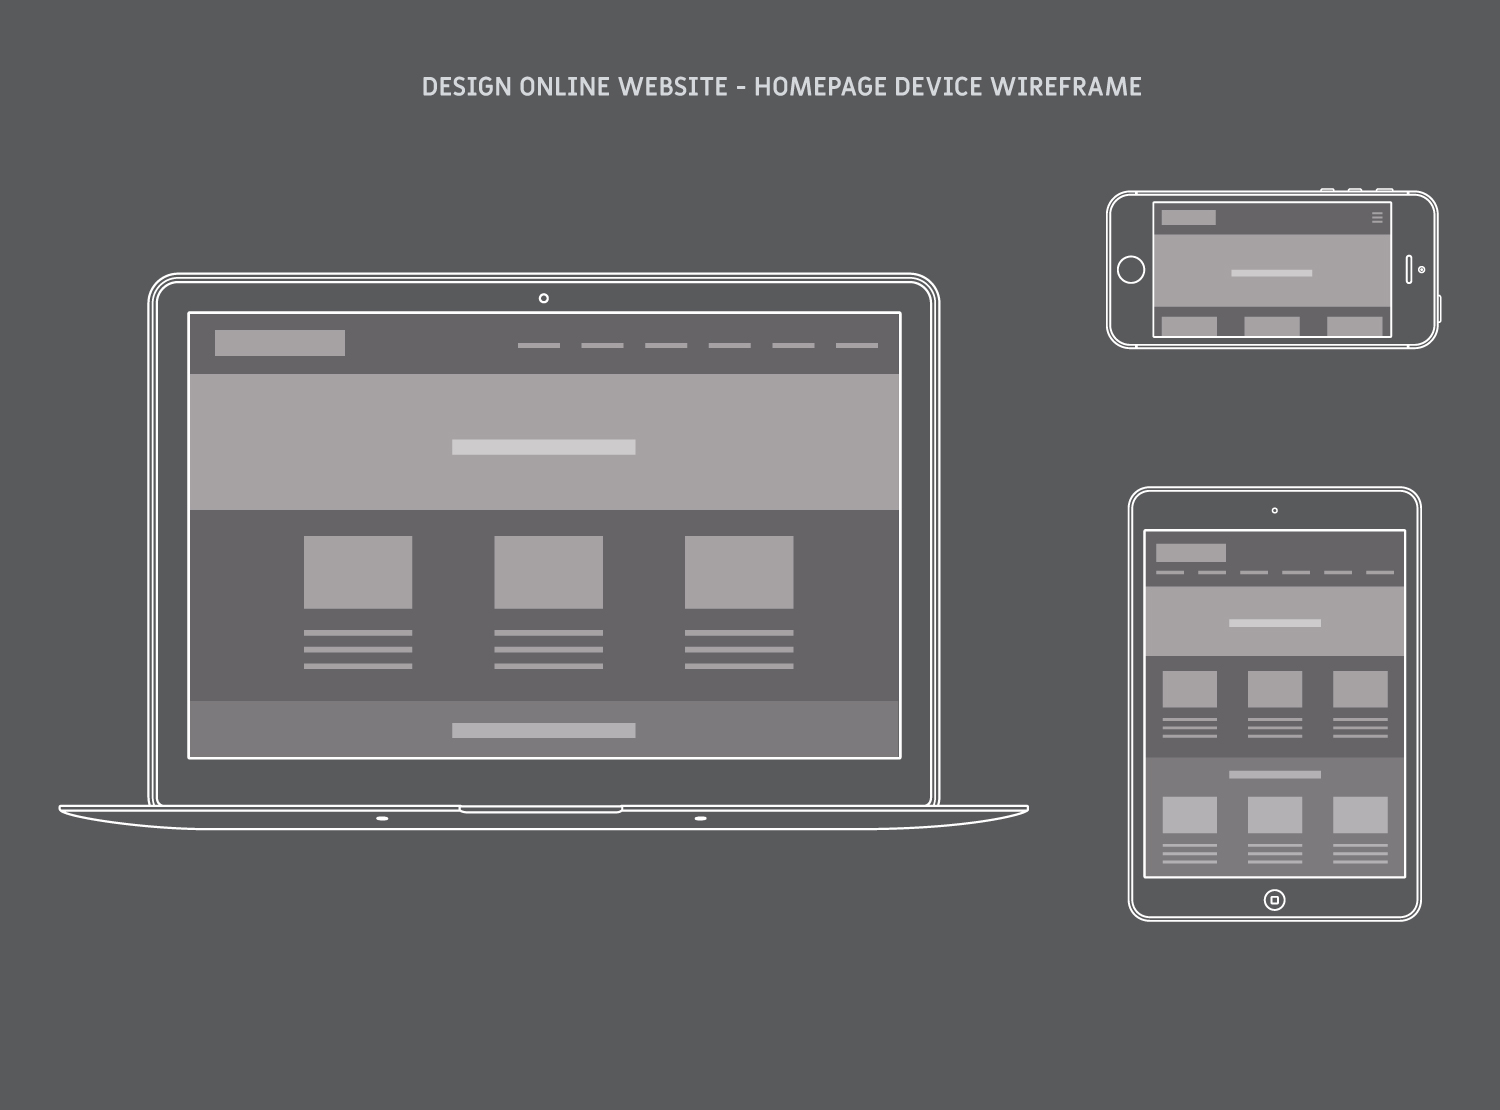 Design Online Homepage Device Wireframe